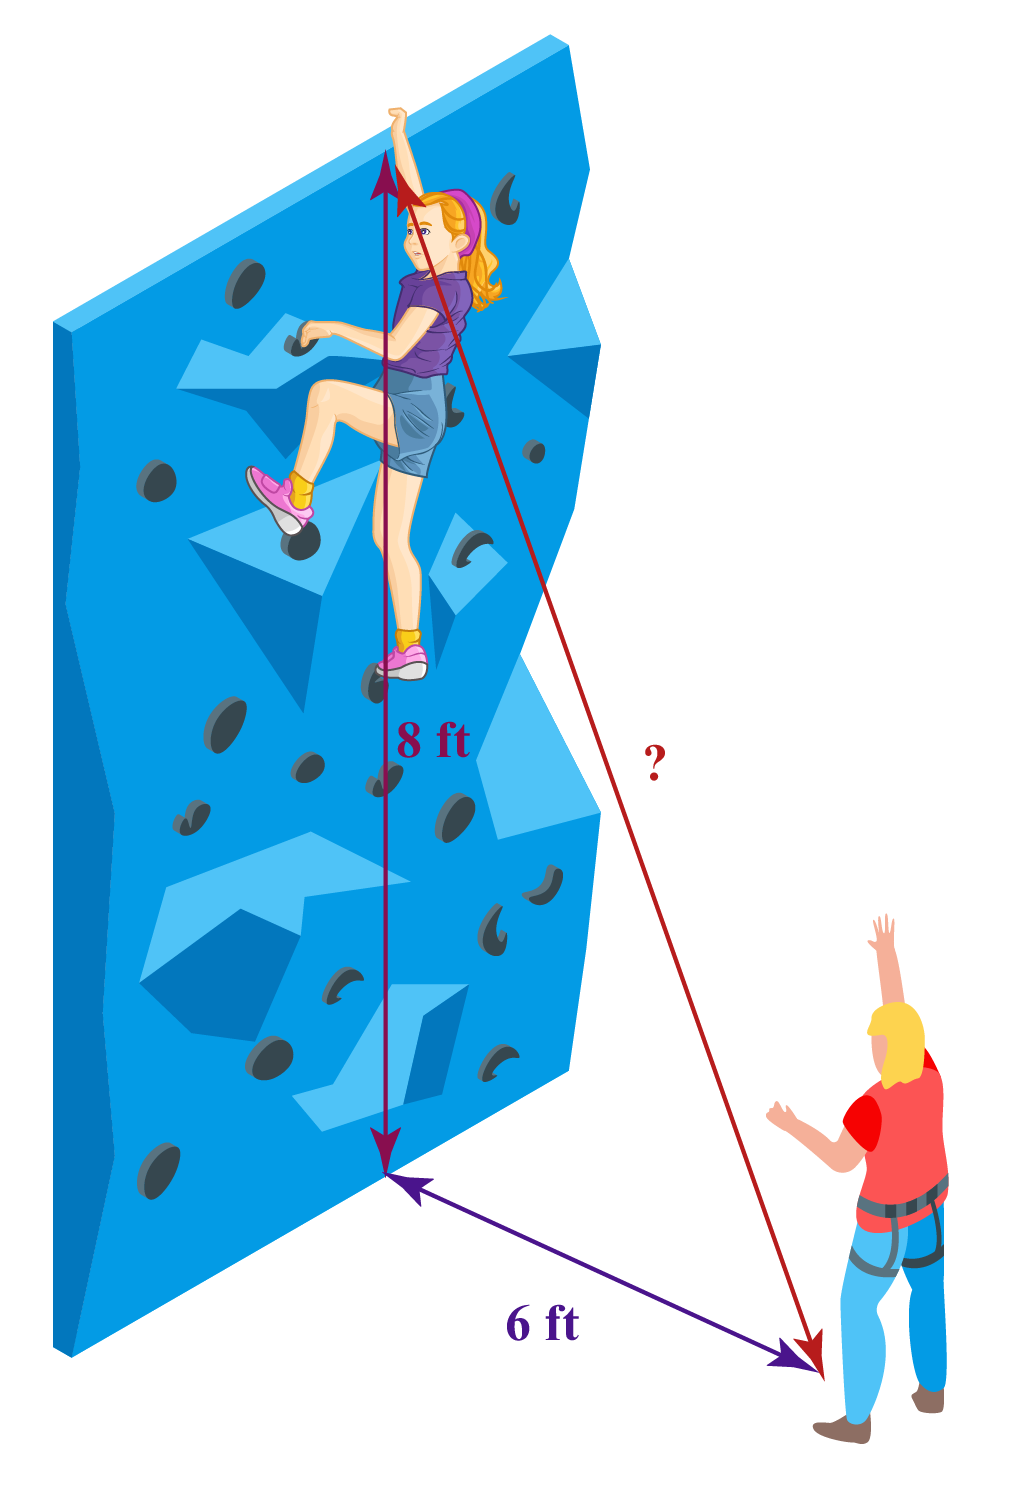 A vertical rock climbed by Ria is 8 feet high and Tim is 6 feet away from the base. This forms a right triangle.